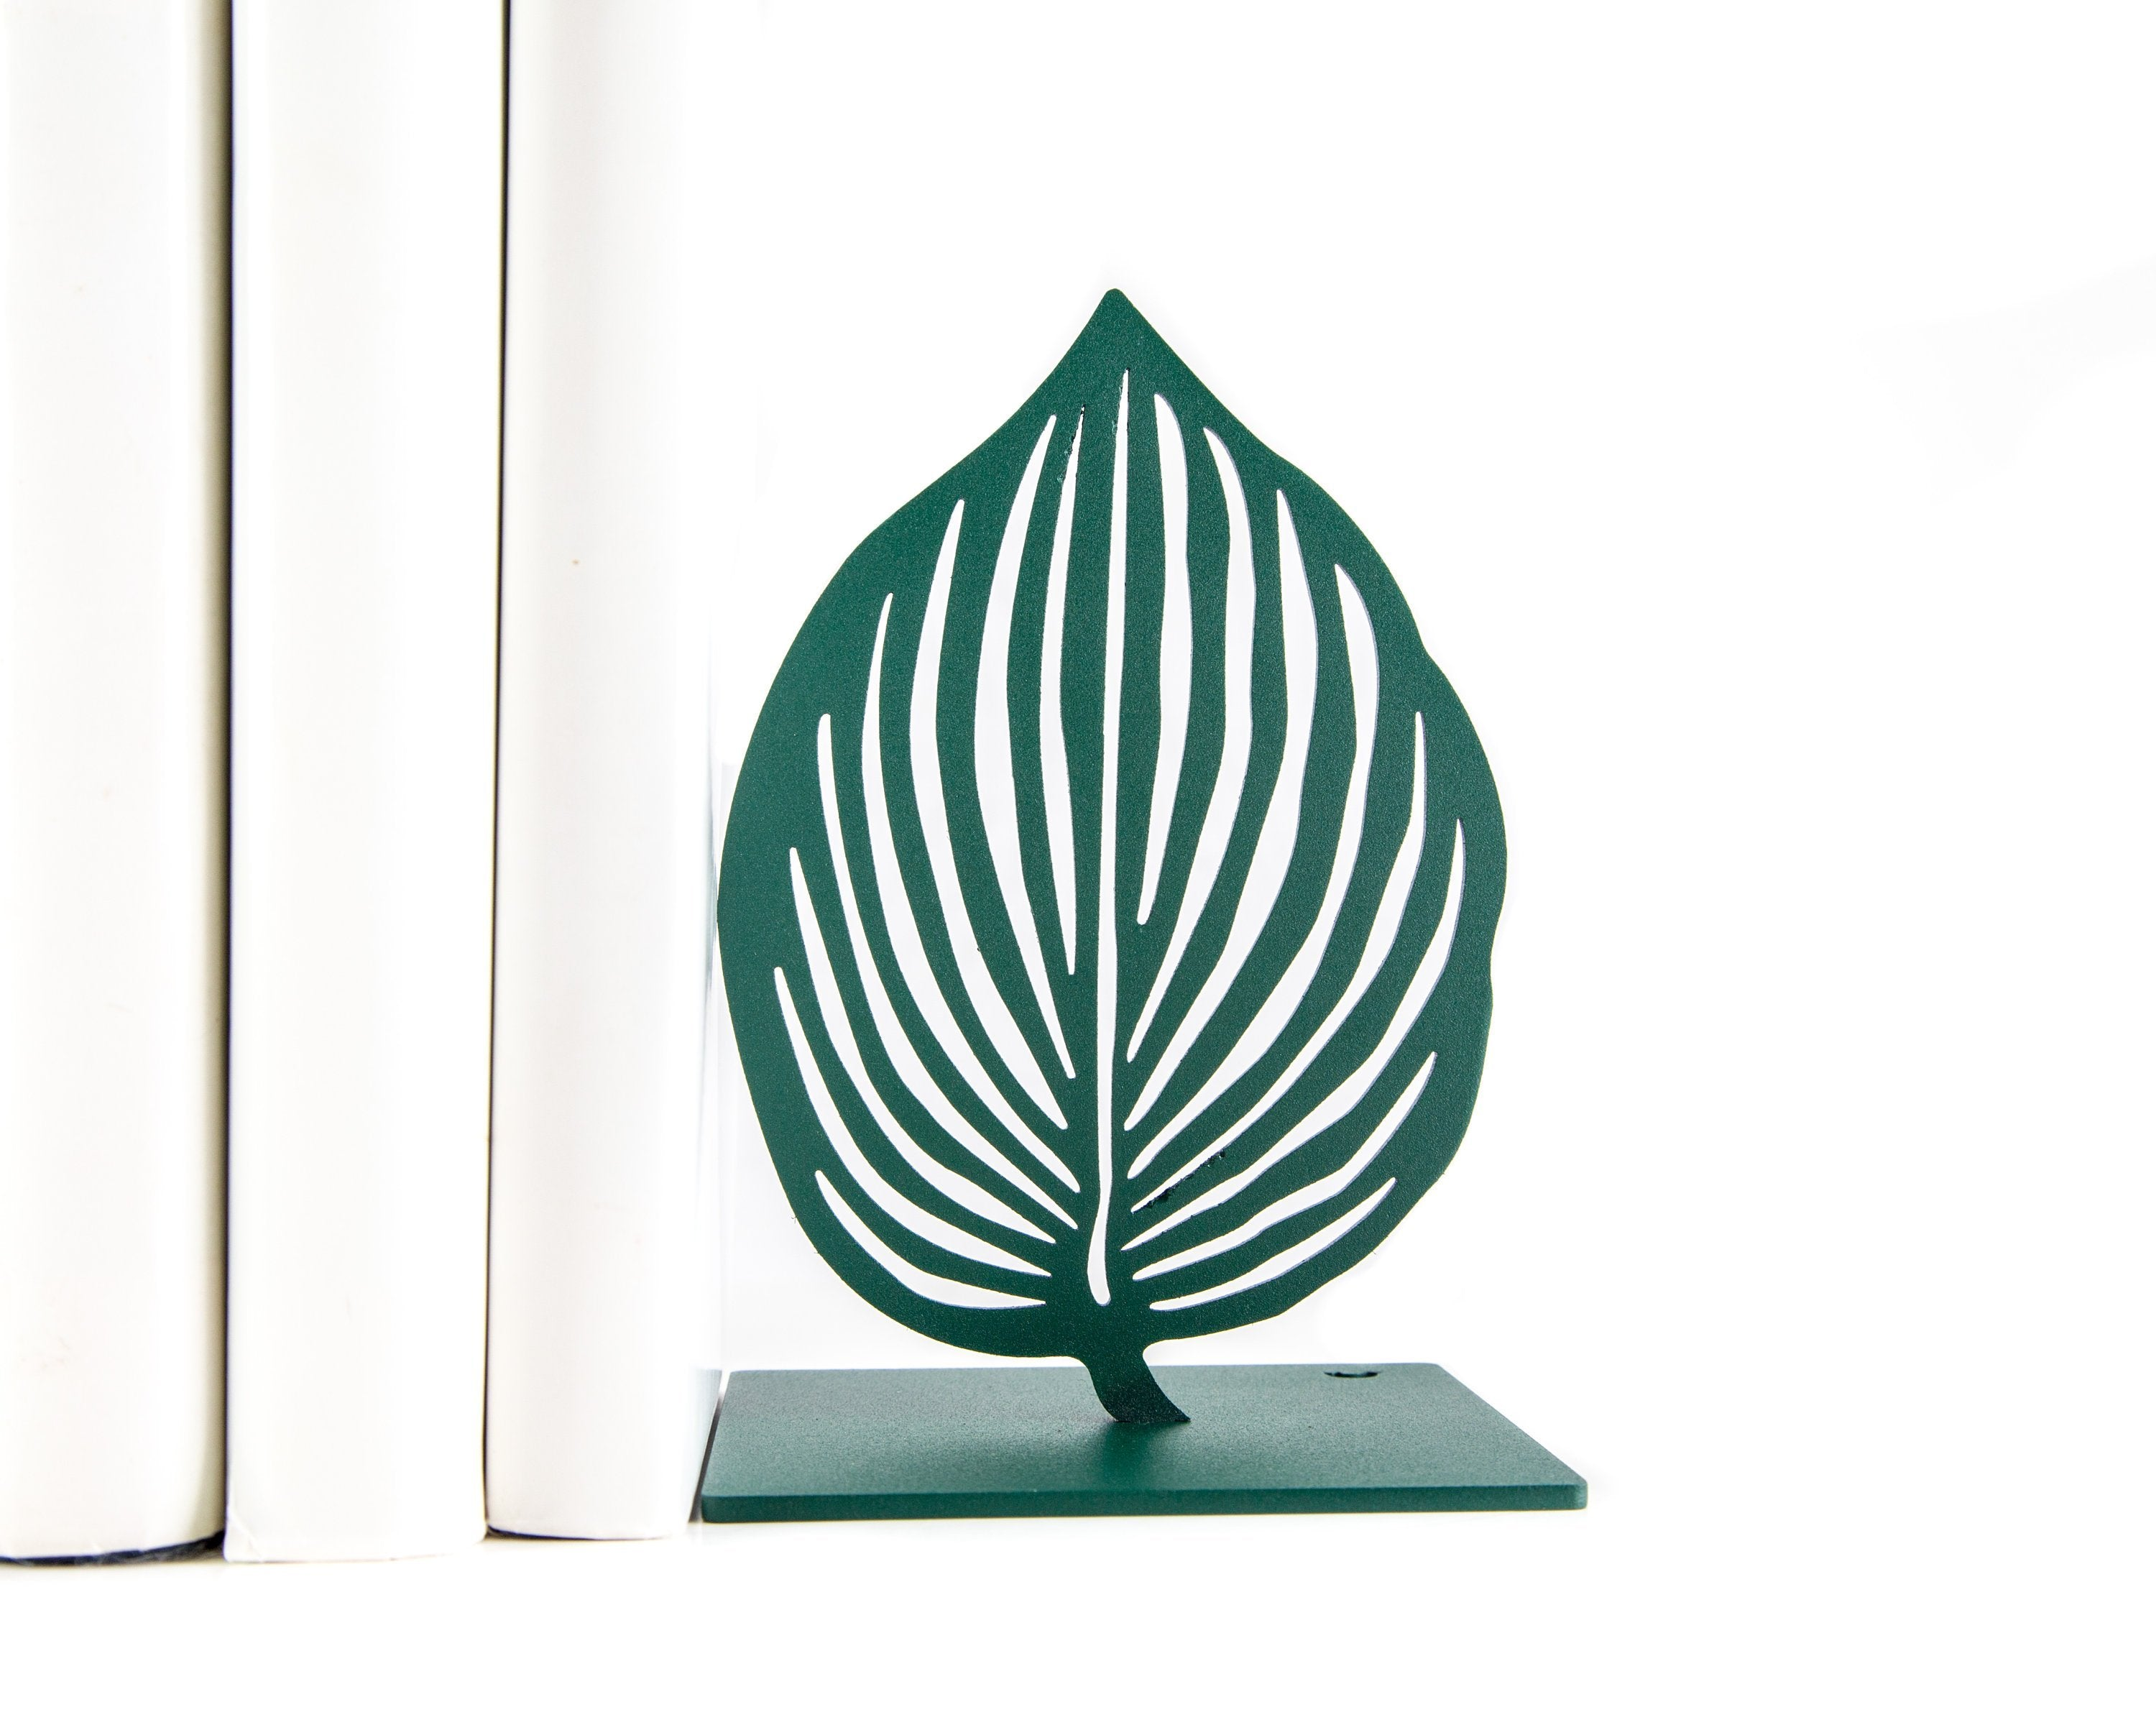 Metal Bookends Green Leaves by Atelier Article // FREE  SHIPPING - Design Atelier Article